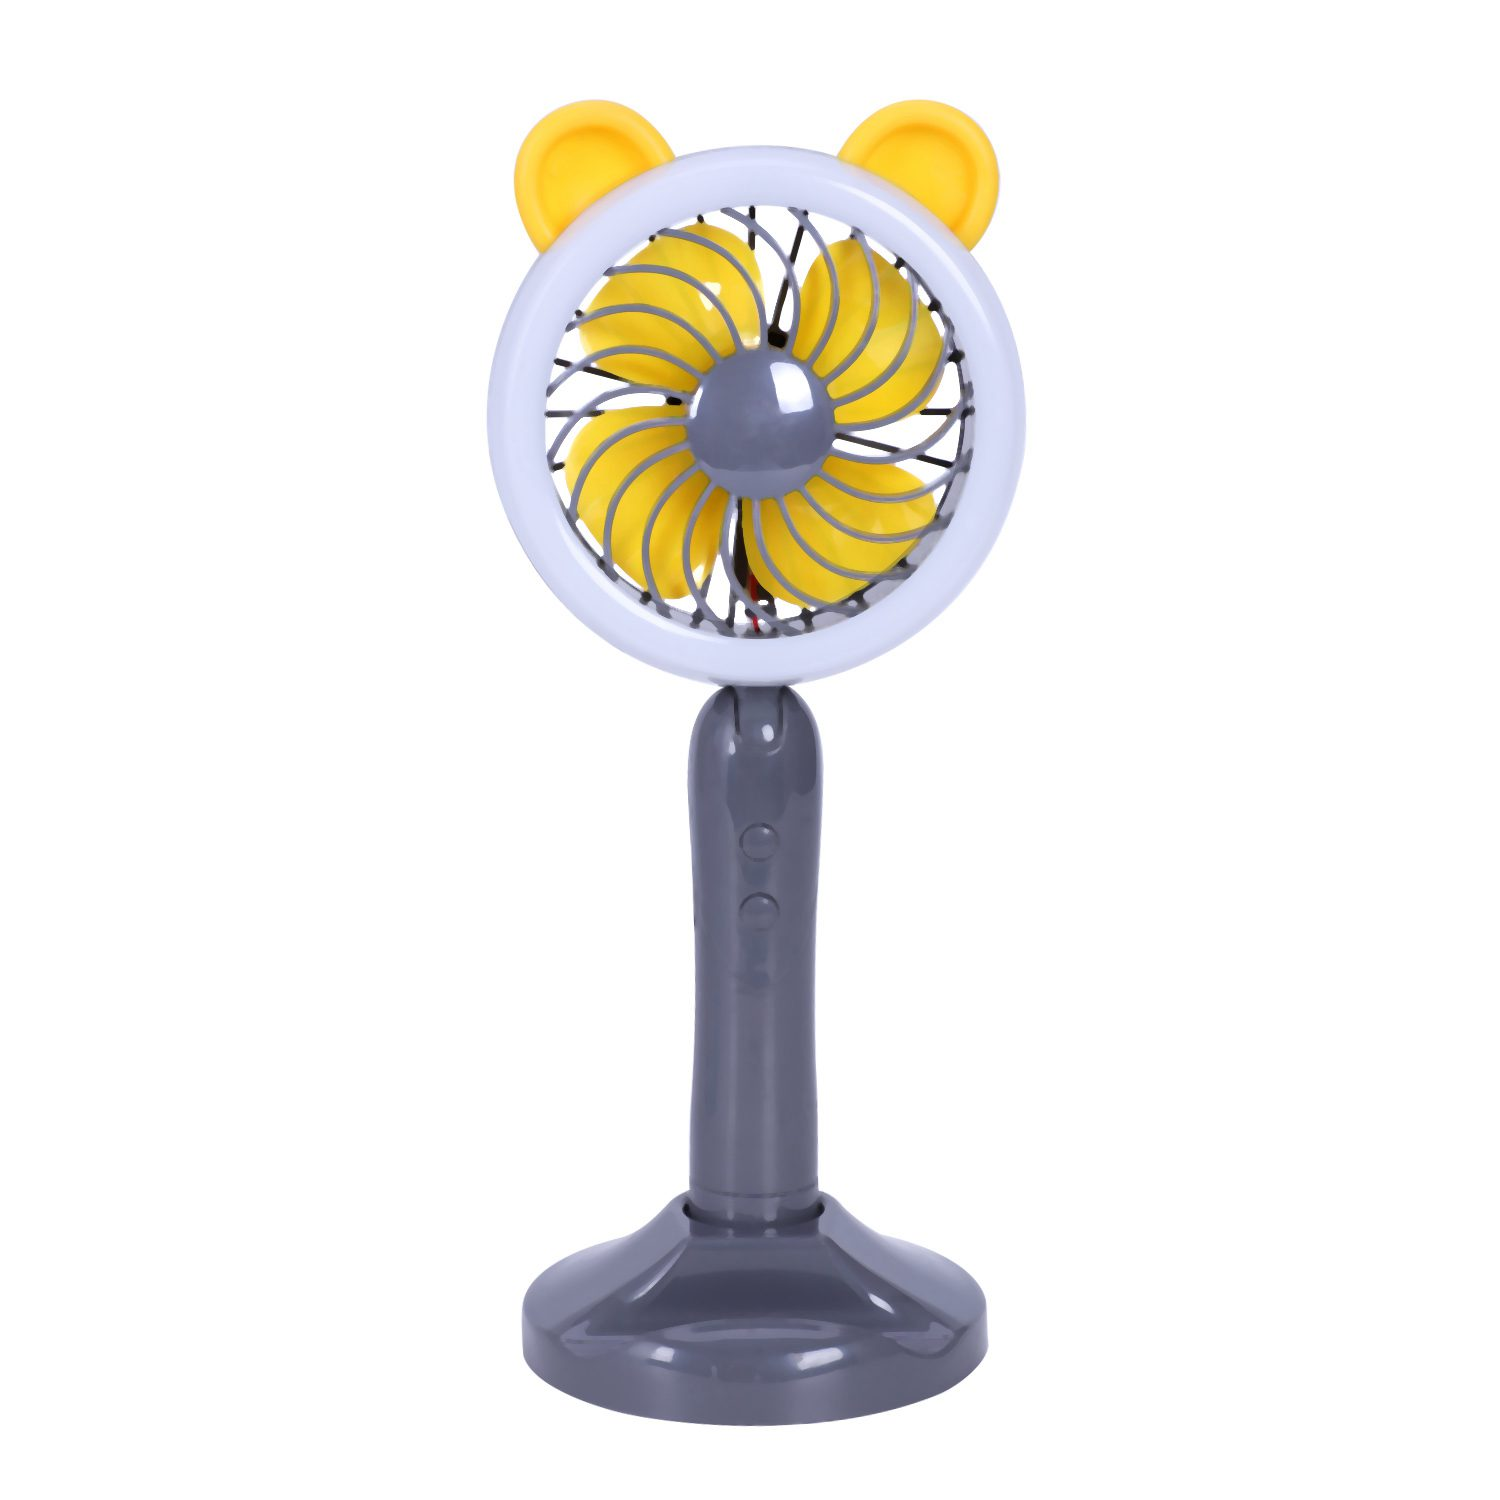 Super Cute Multifunction Portable Phone Selfie LED Ring Light USB Charger Fan For Hot Summer Phone HolderSuper Cute Multifunction Portable Phone Selfie LED Ring Light USB Charger Fan For Hot Summer Phone Holder